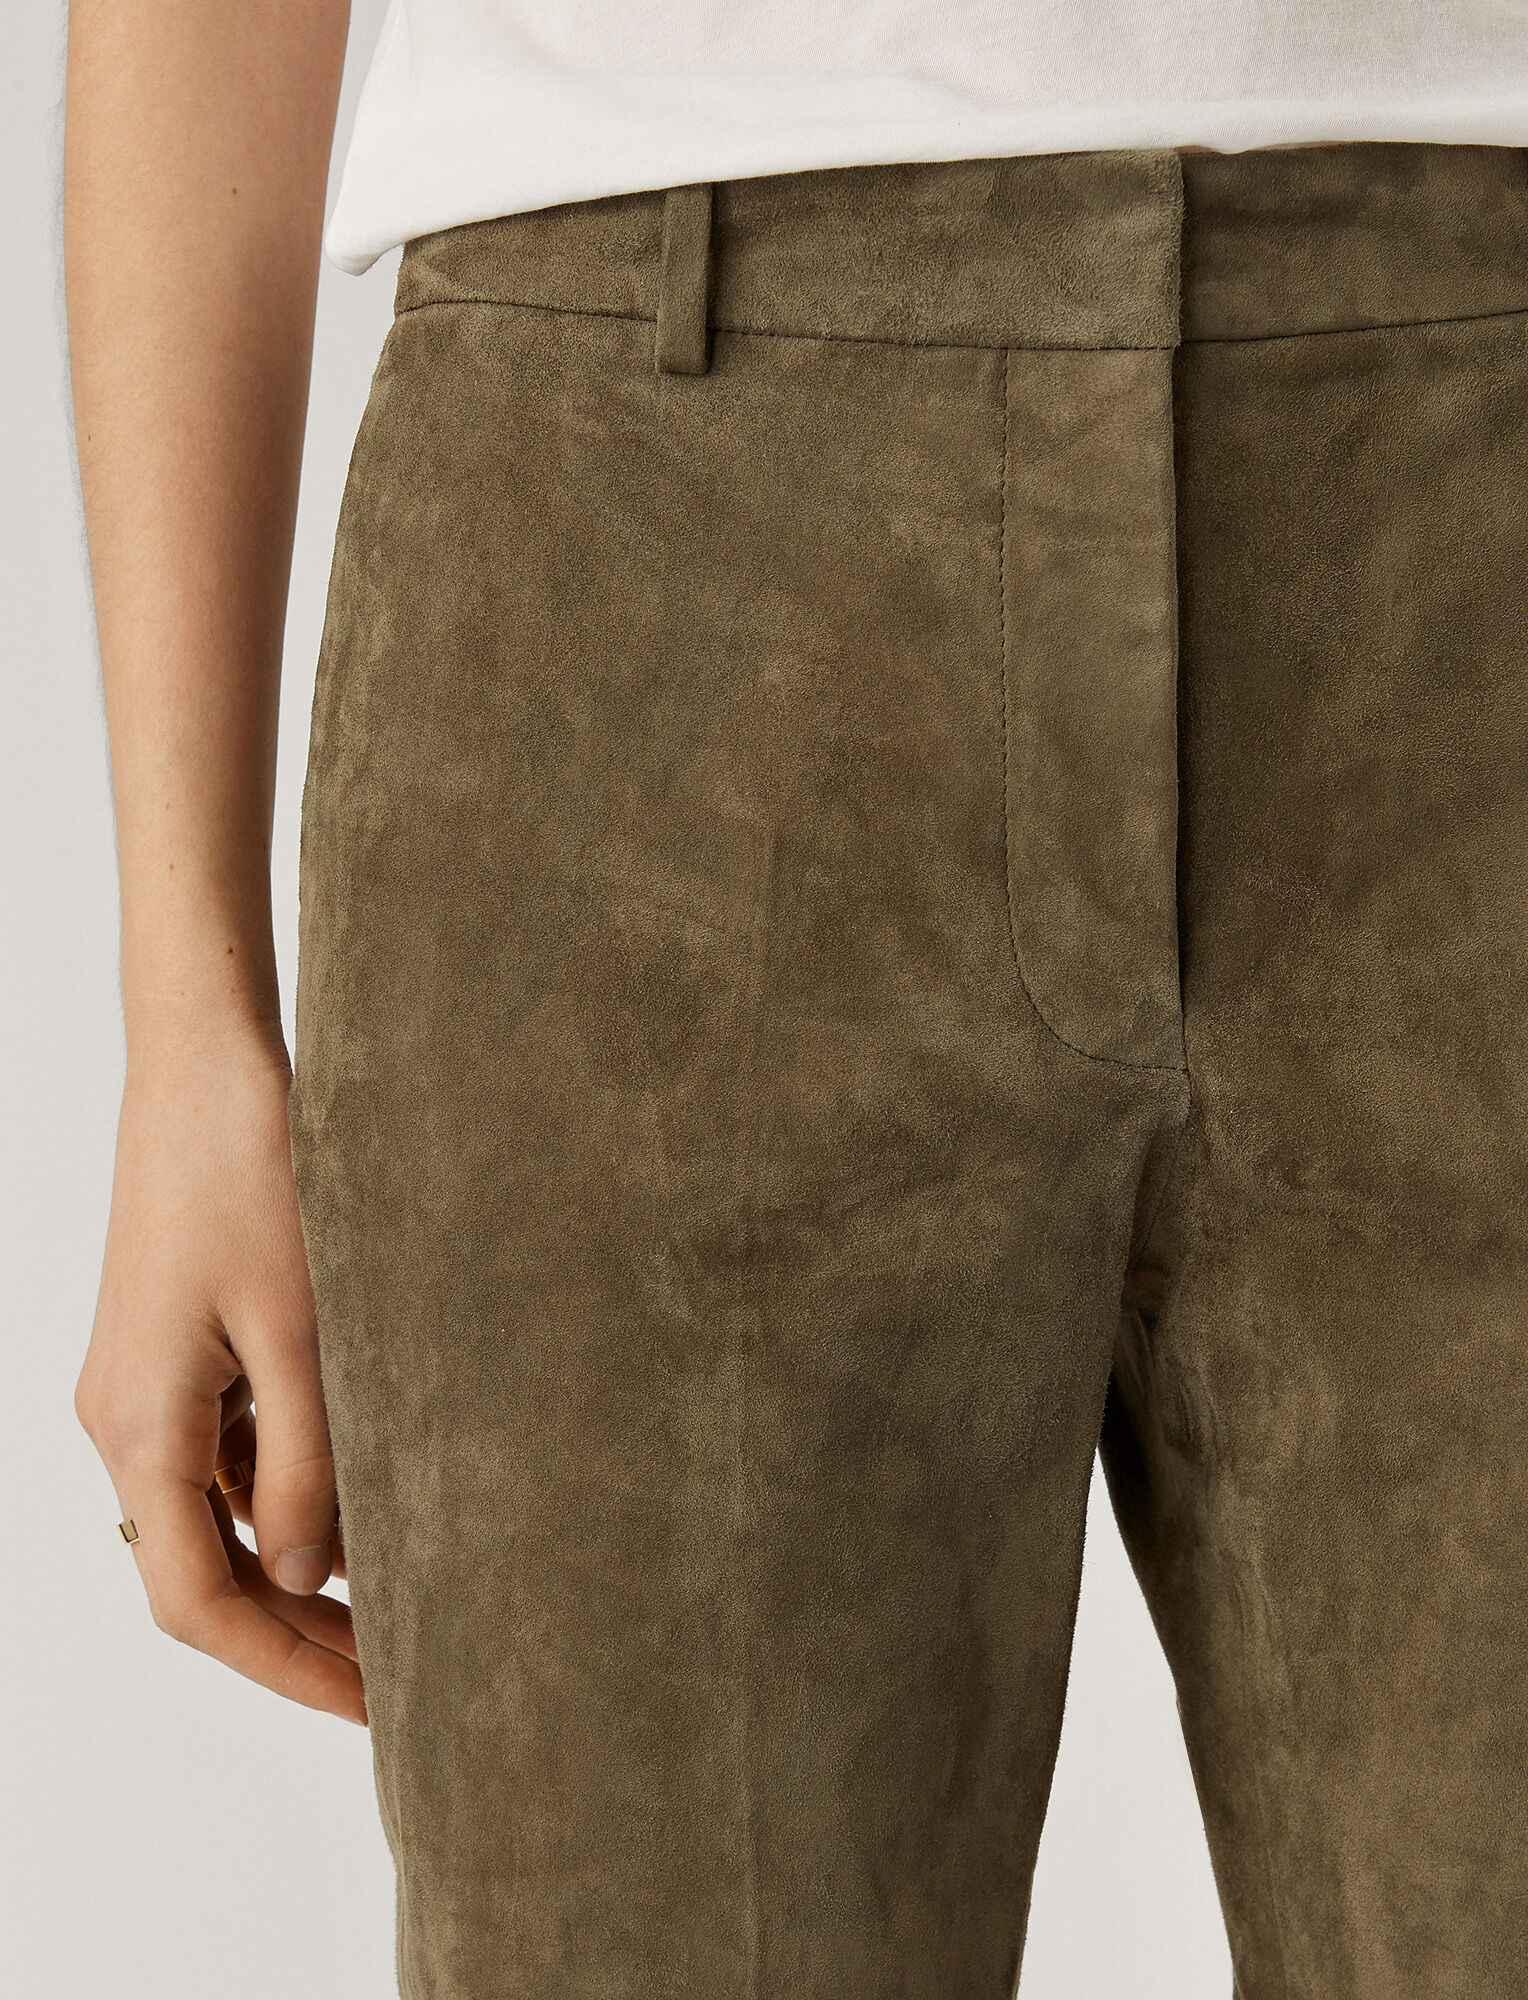 Joseph, Coleman Suede Stretch Trousers, in OLIVE